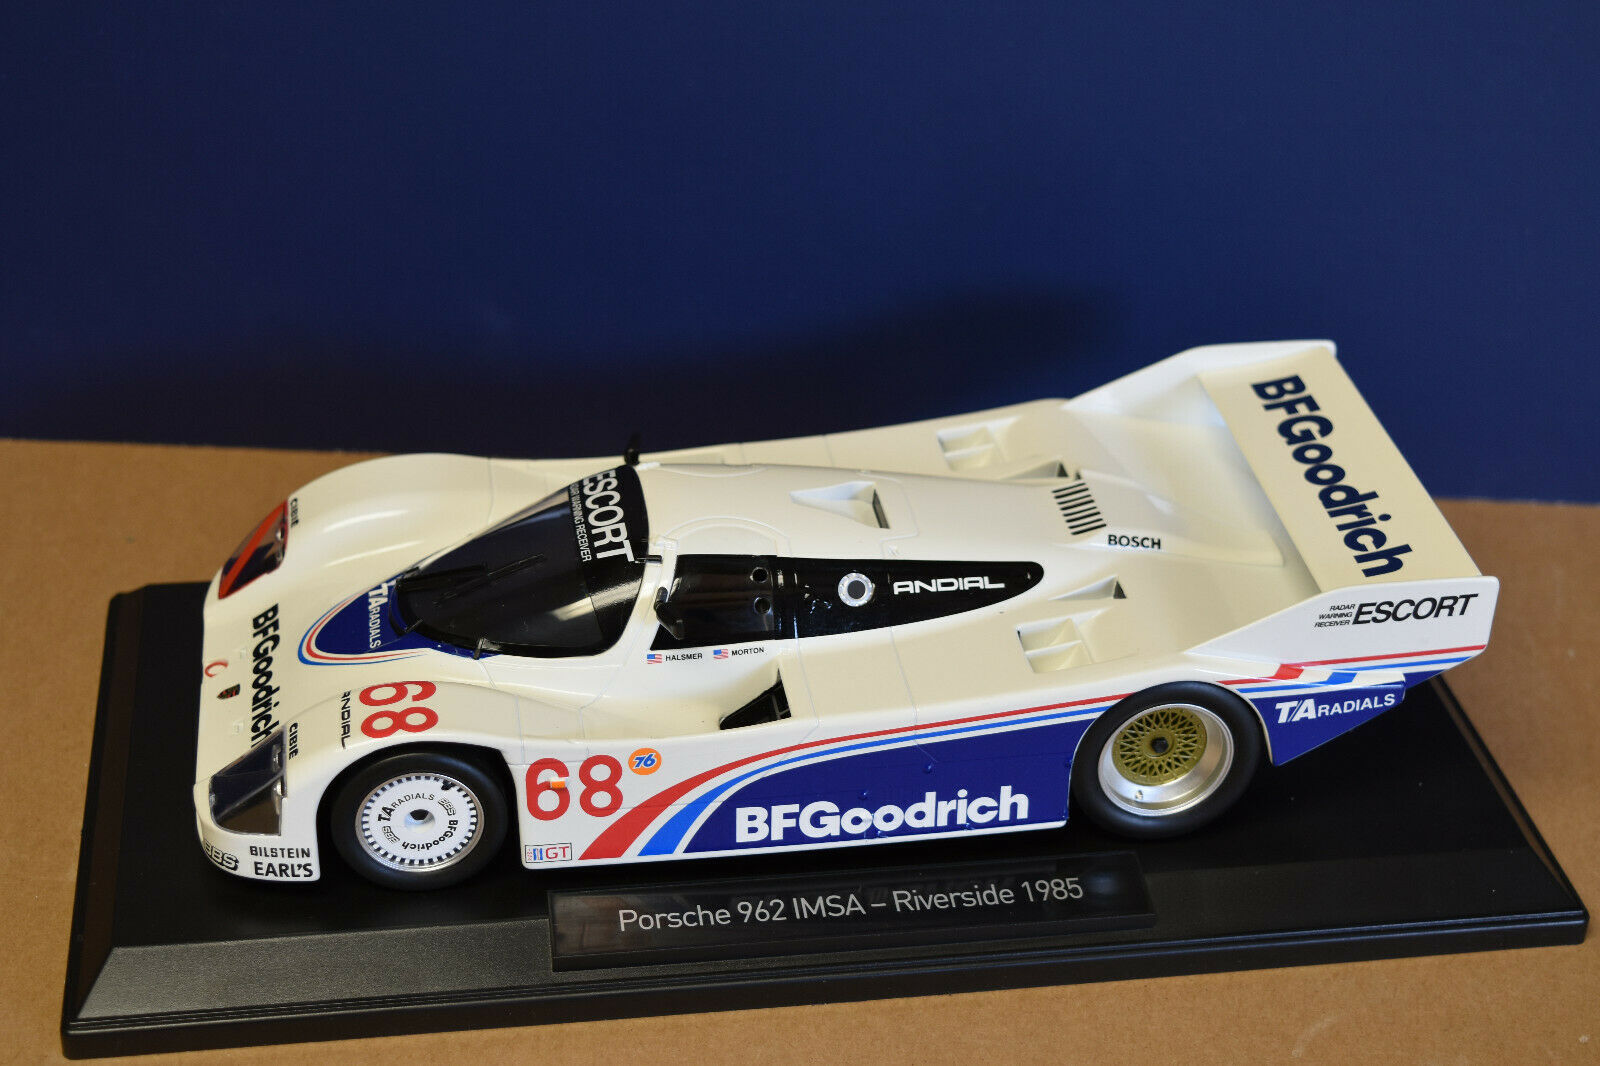 Norev 1 18 Porsche 962 IMSA Riverside 1985  BFGoodrich  (1 of 1000 Pieces) NEW